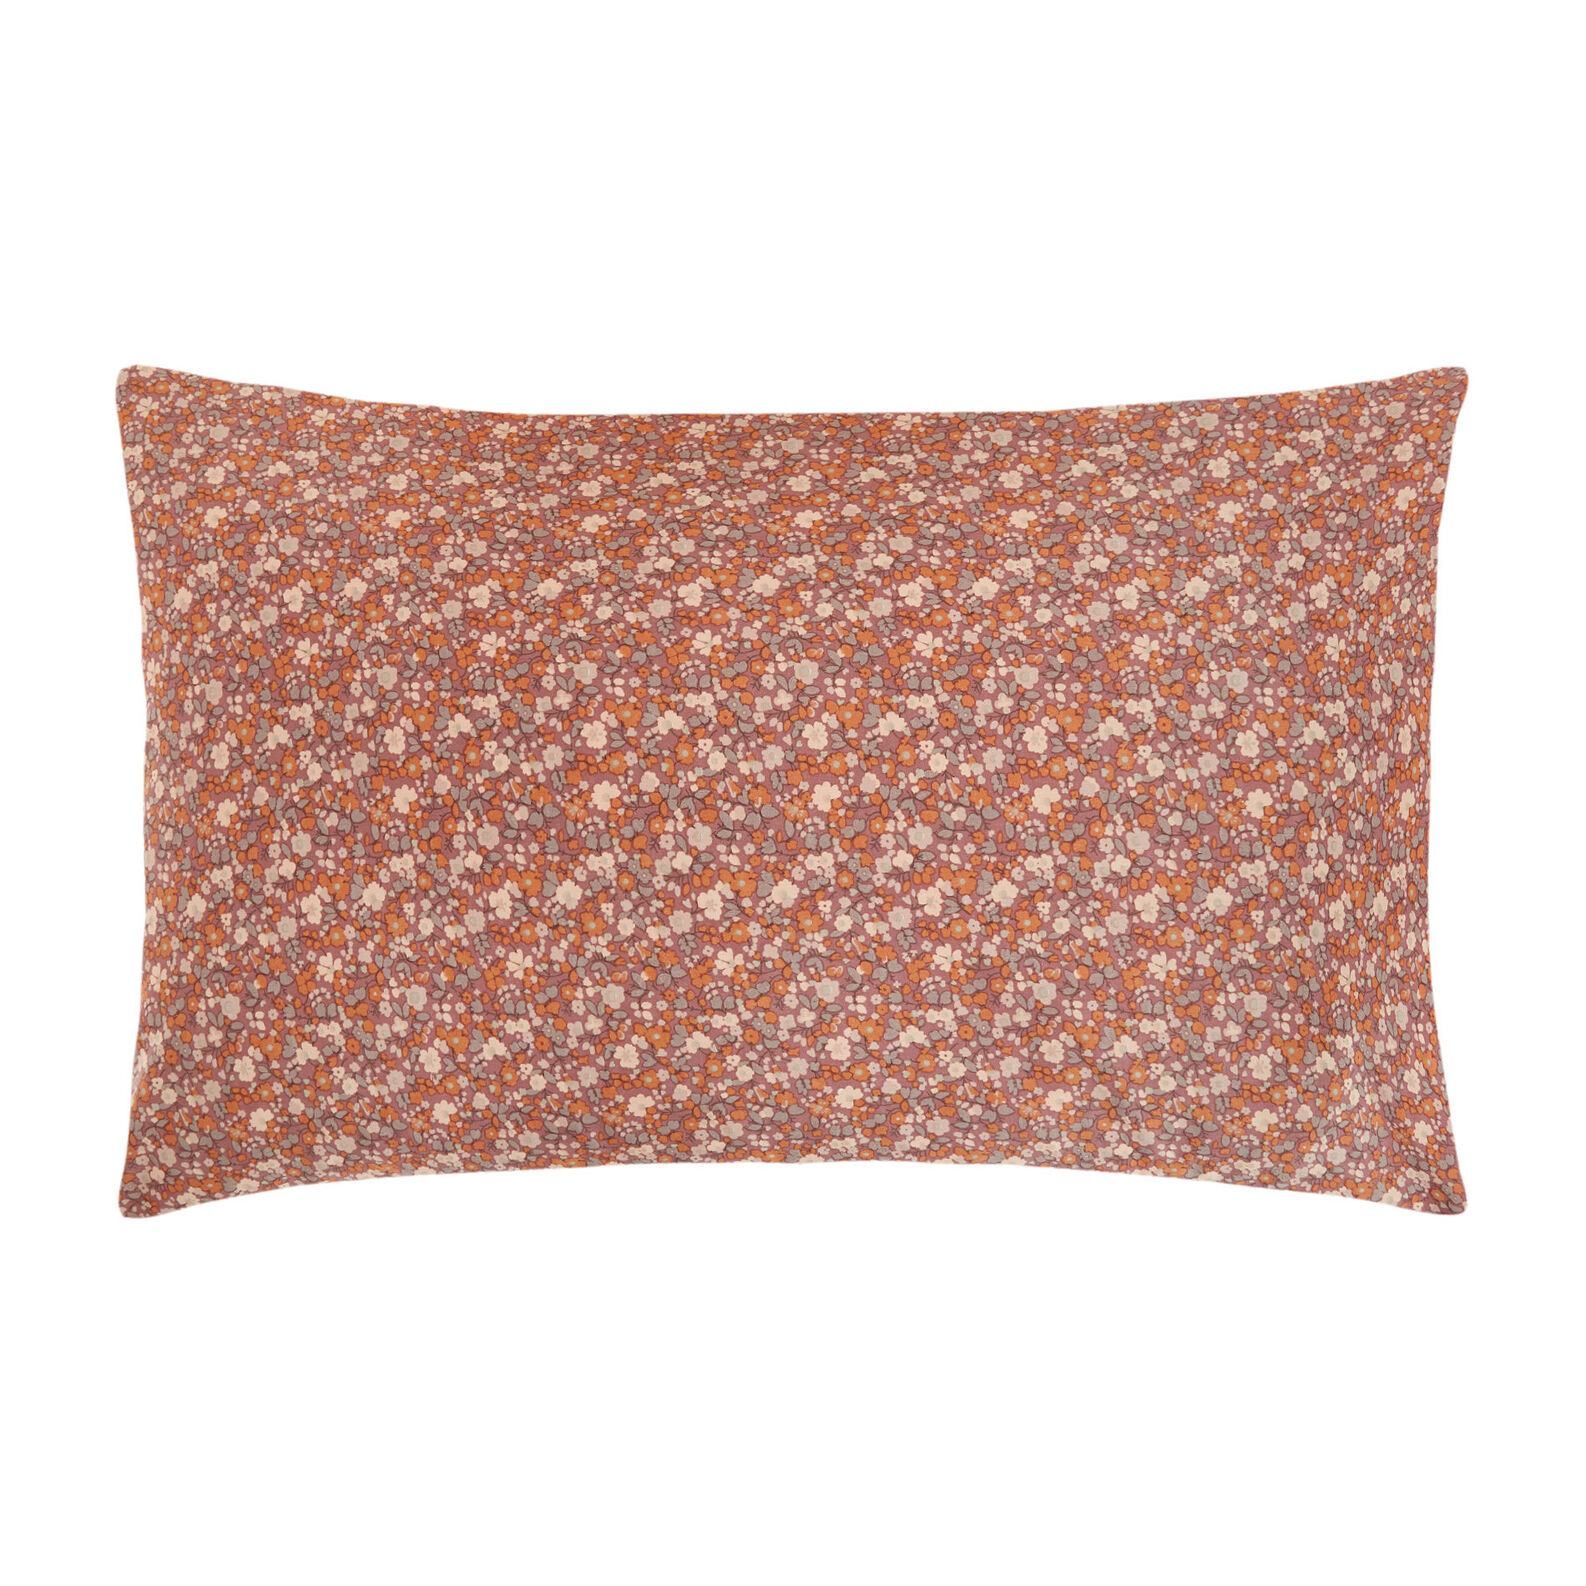 Cotton percale pillowcase with micro floral pattern